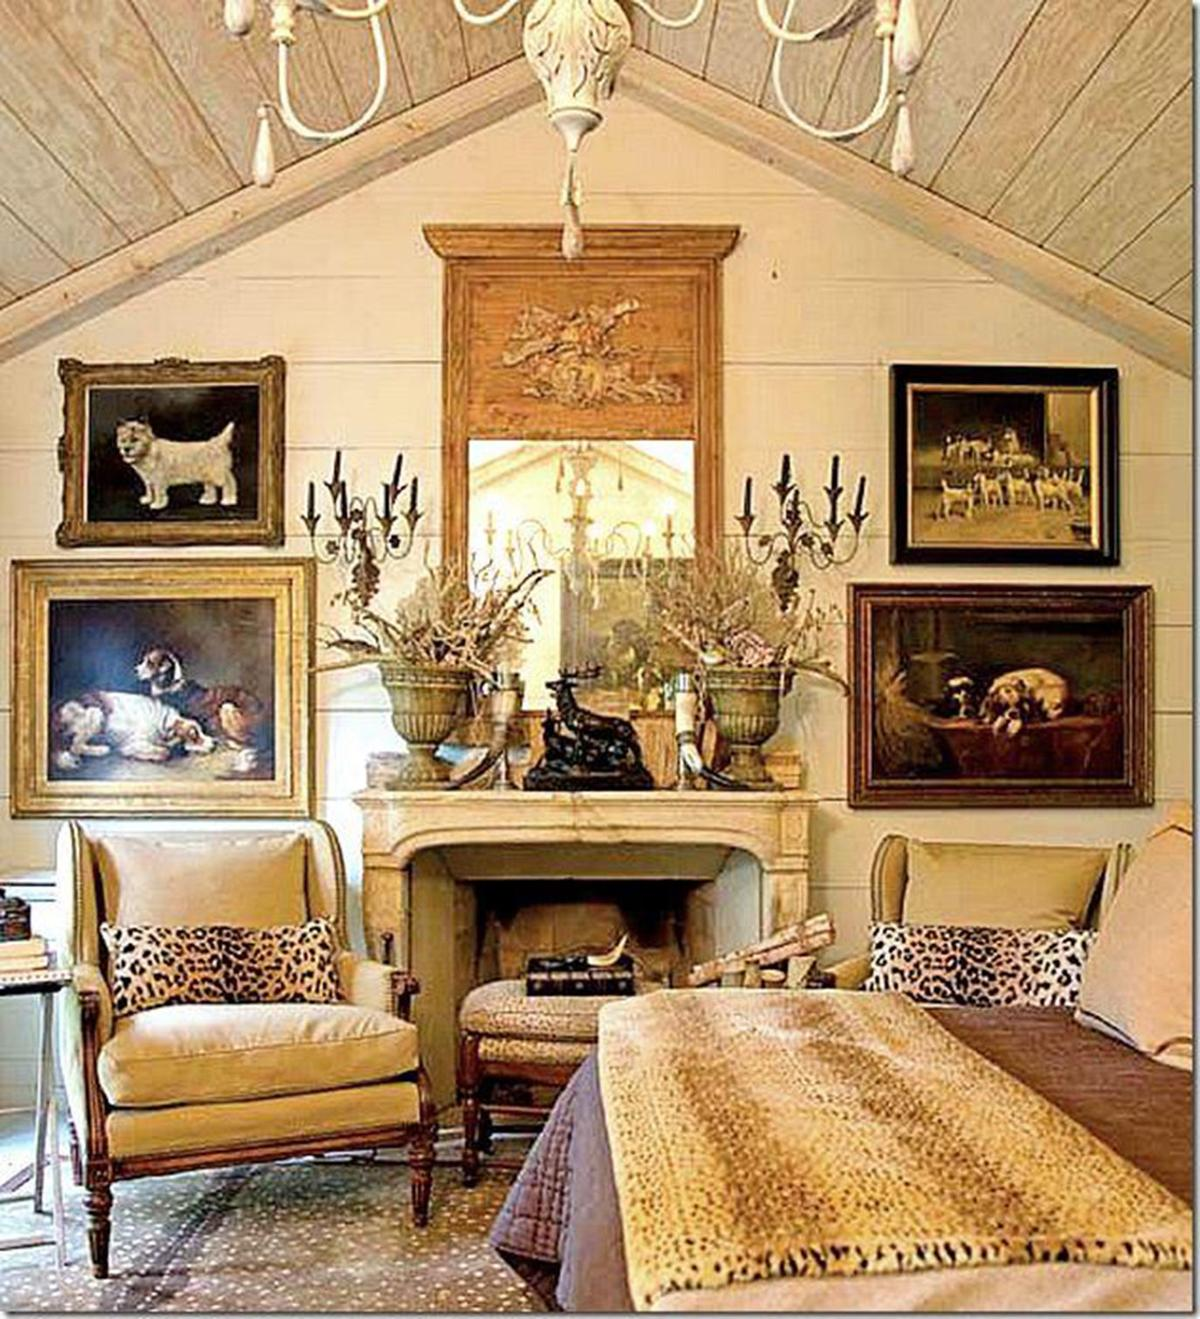 Mary carol garrity four of my favorite interior designers for Charles faudree antiques and interior designs